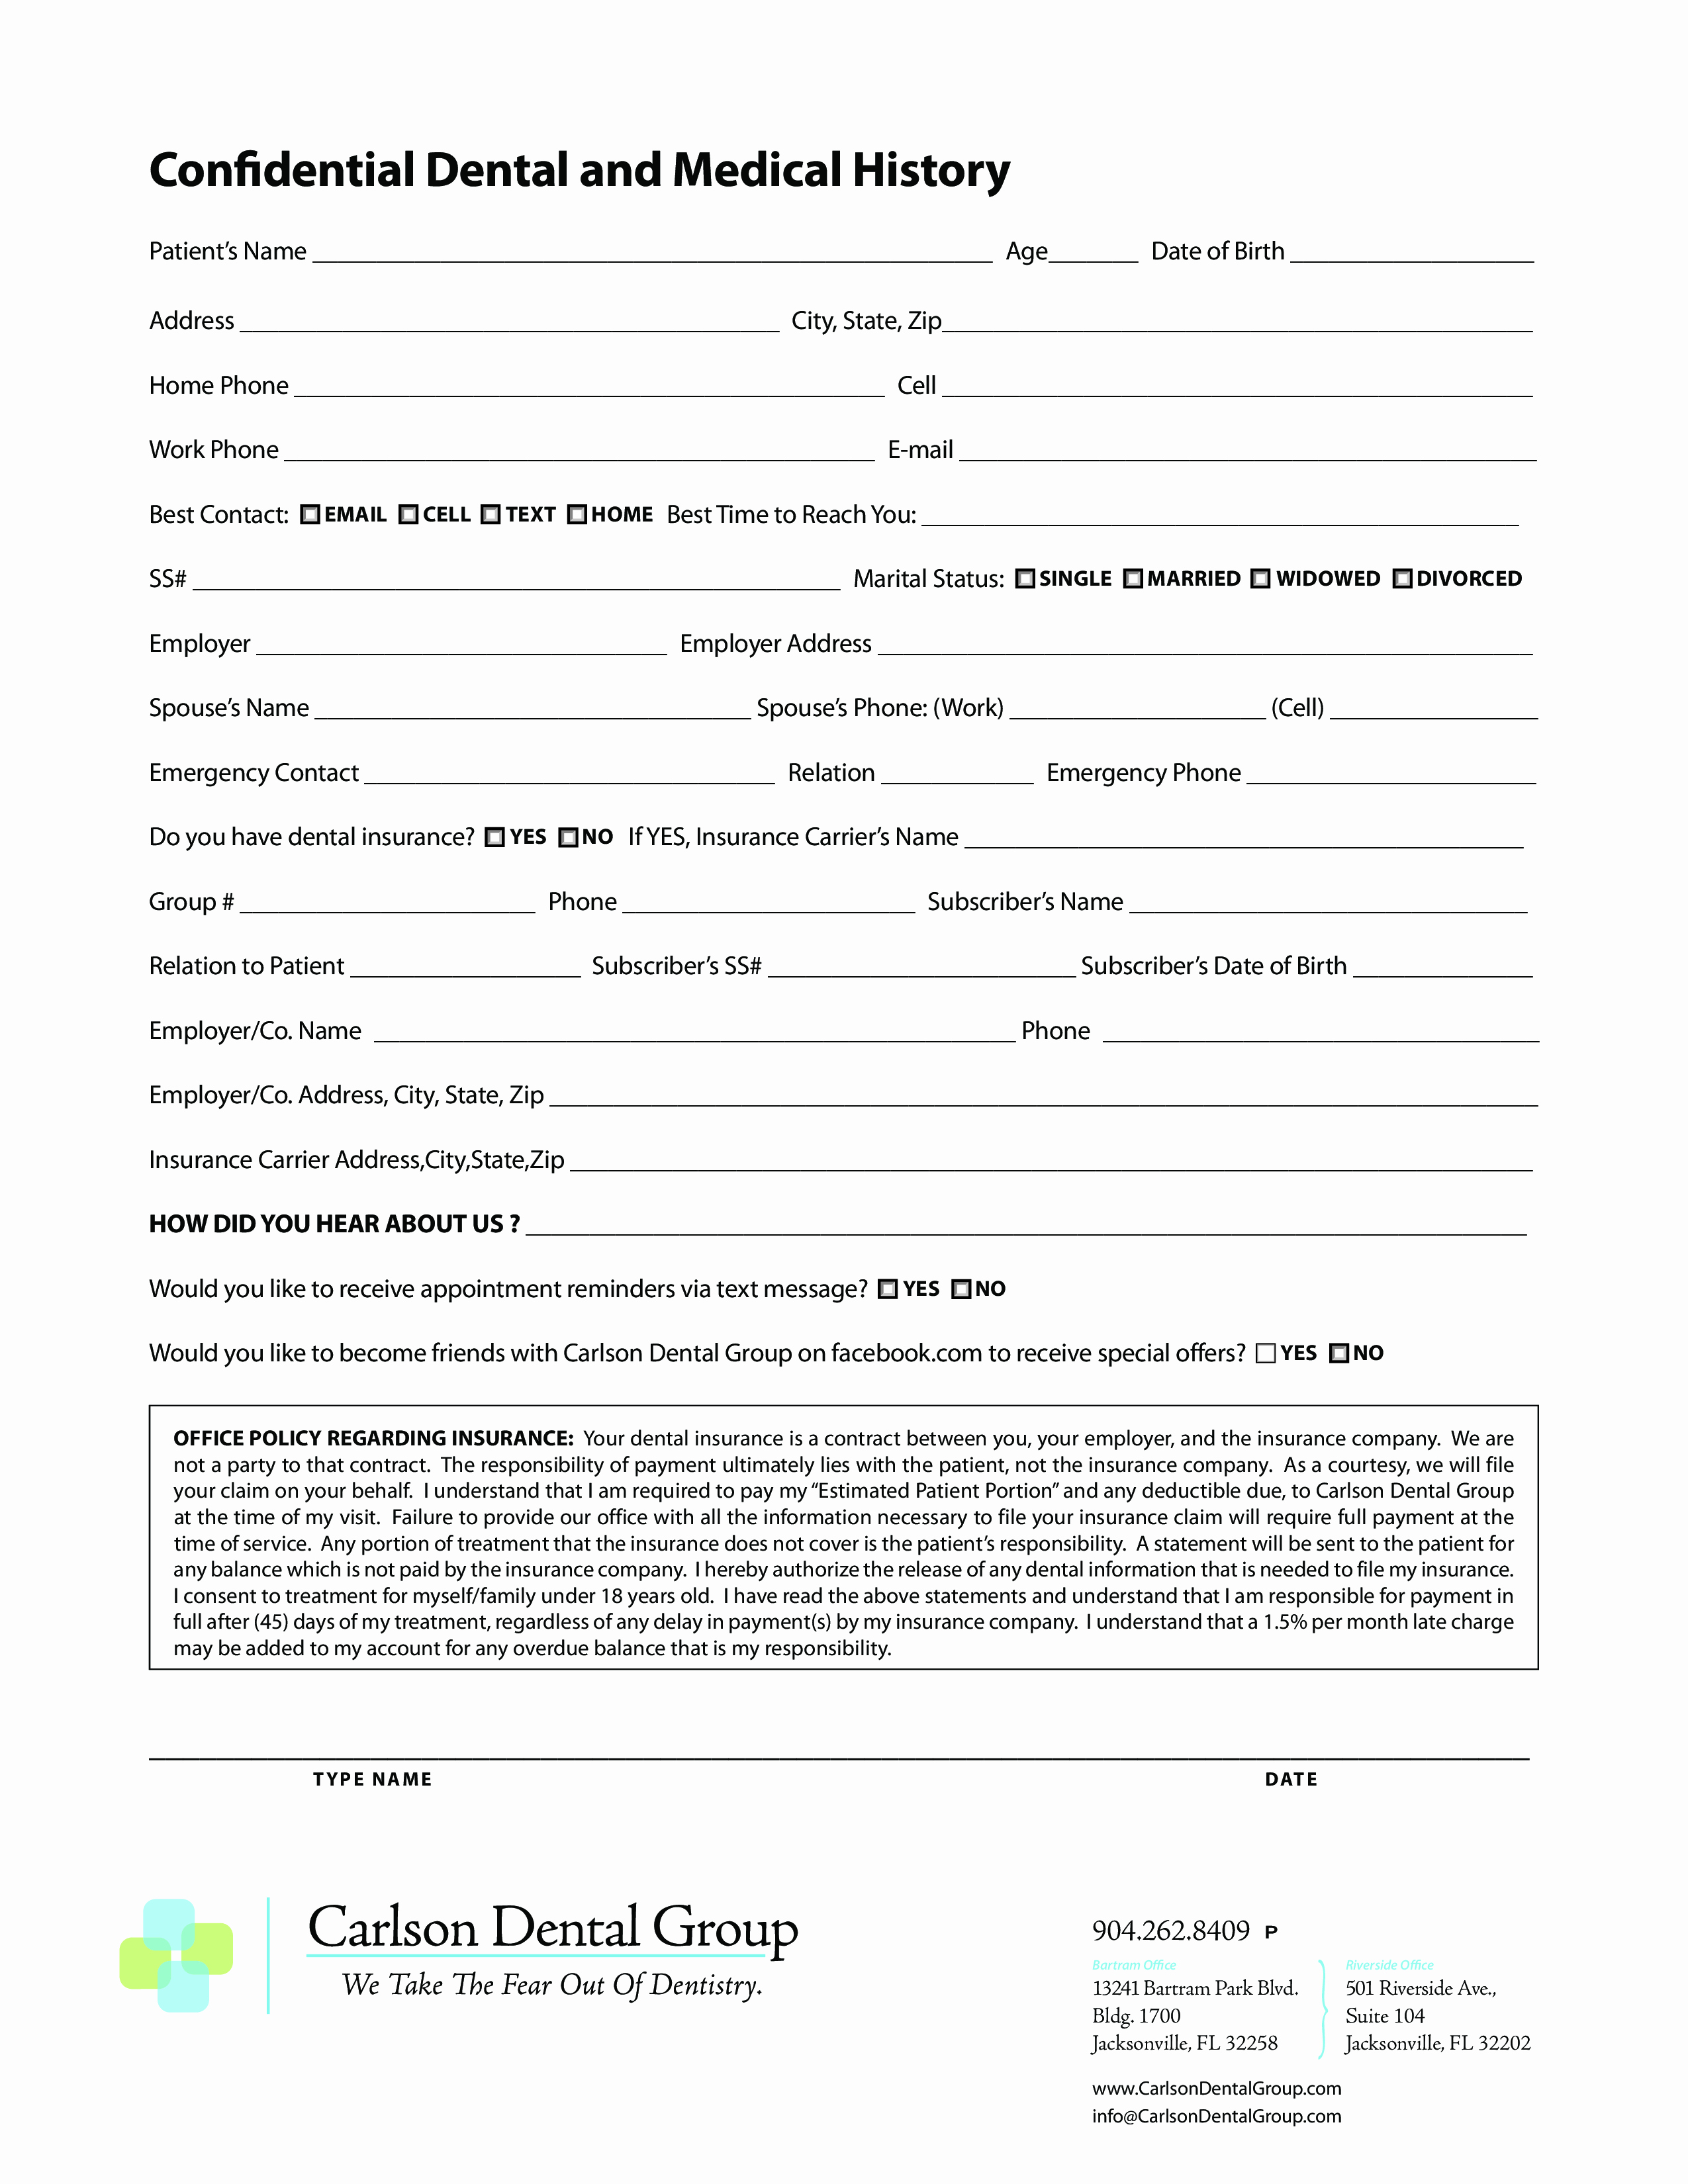 Dental Office forms Templates Inspirational Dental Medical History form